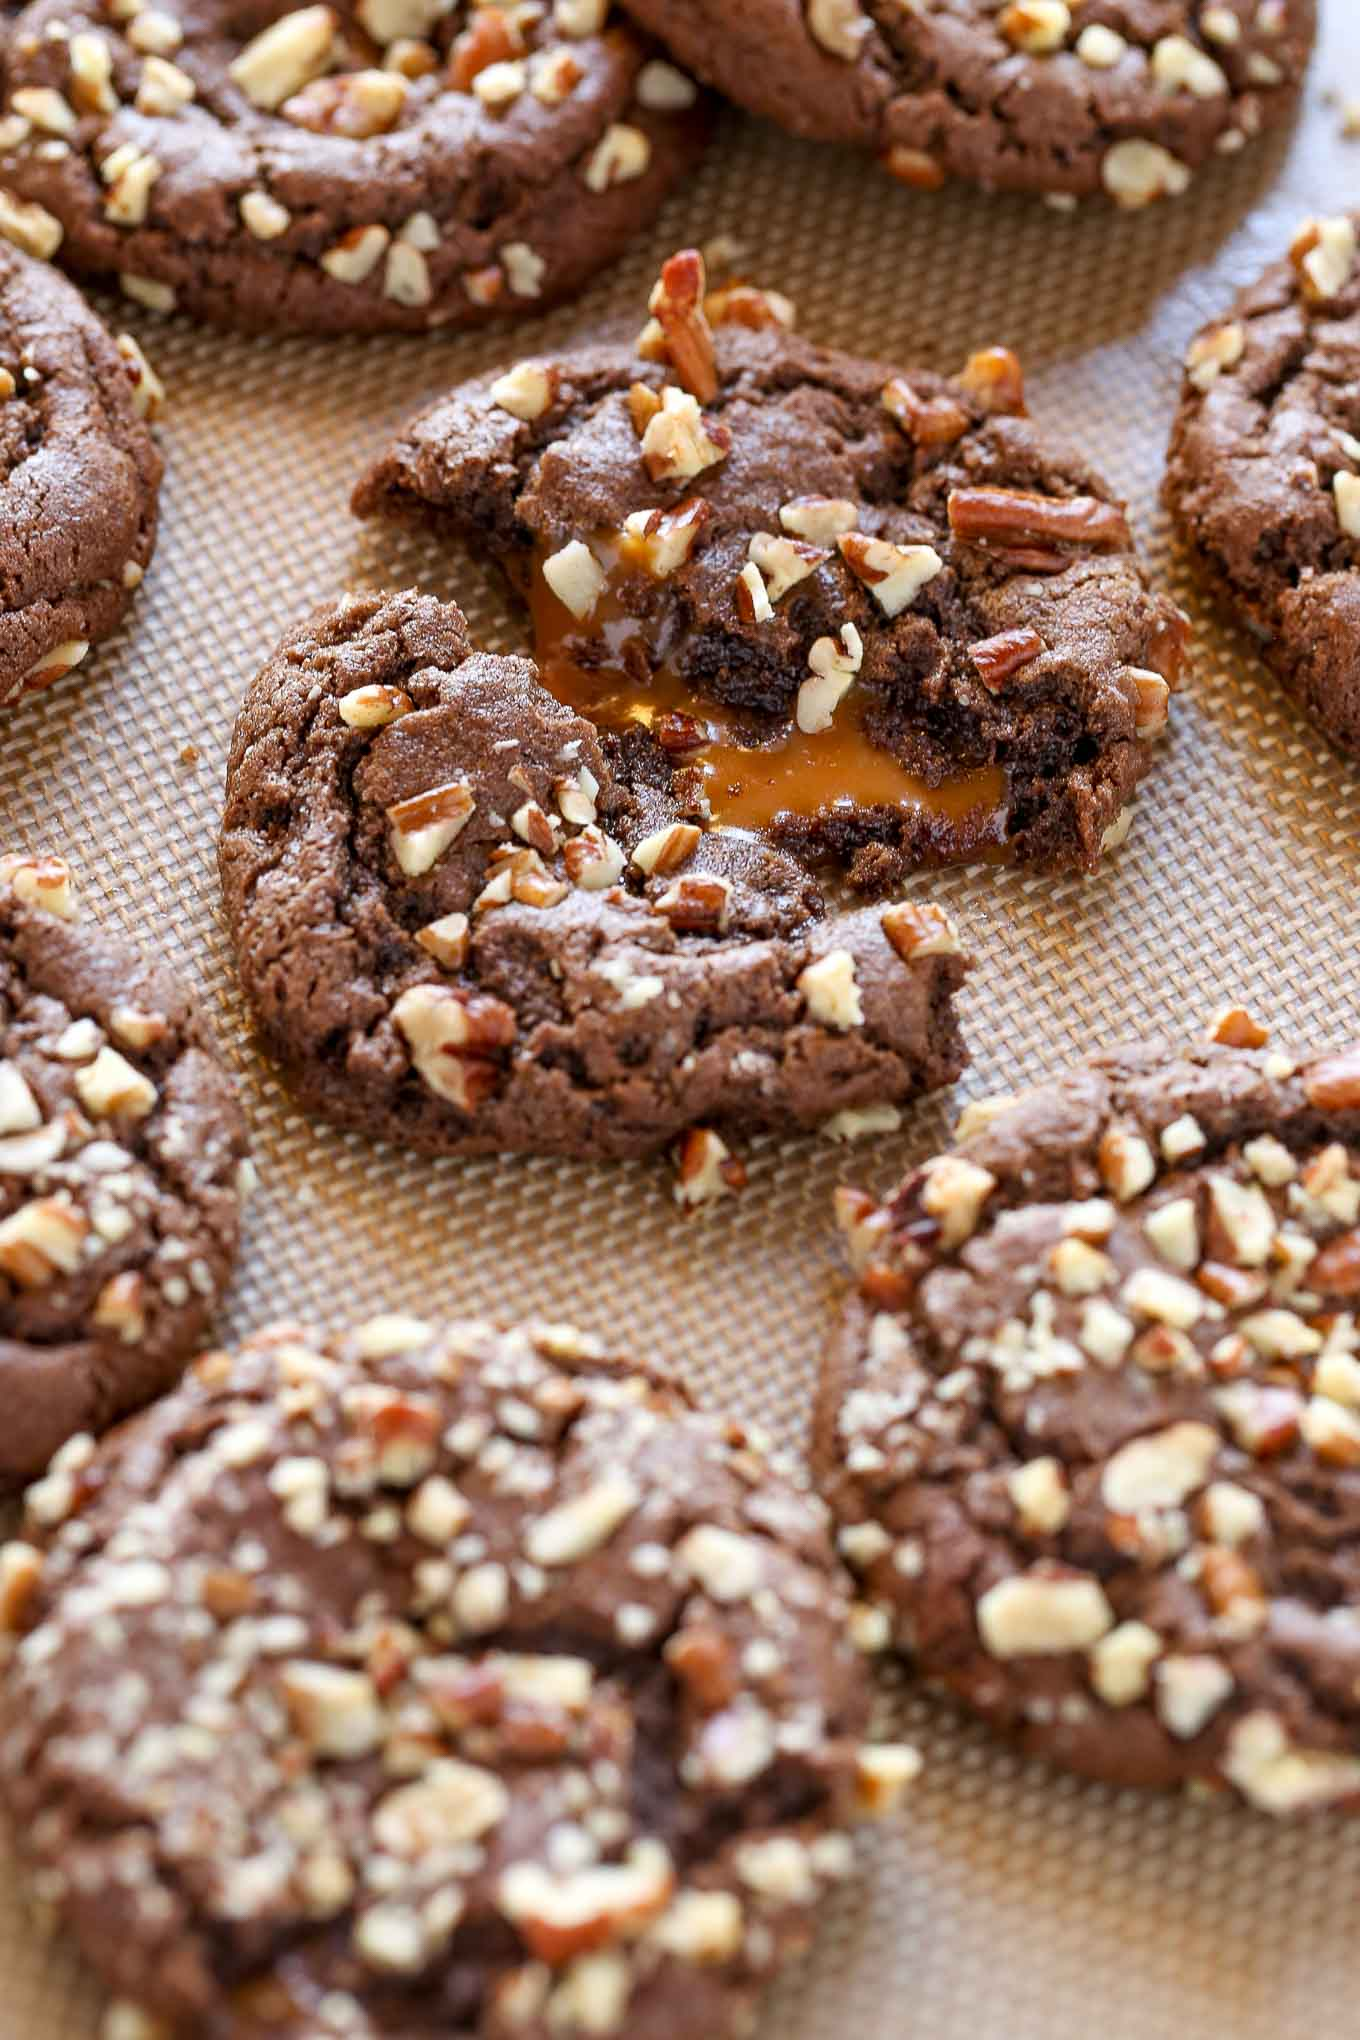 A recipe for easy chocolate cookies stuffed with caramel and coated in chopped pecans. The Chocolate Turtle Cookies are the ultimate dessert!